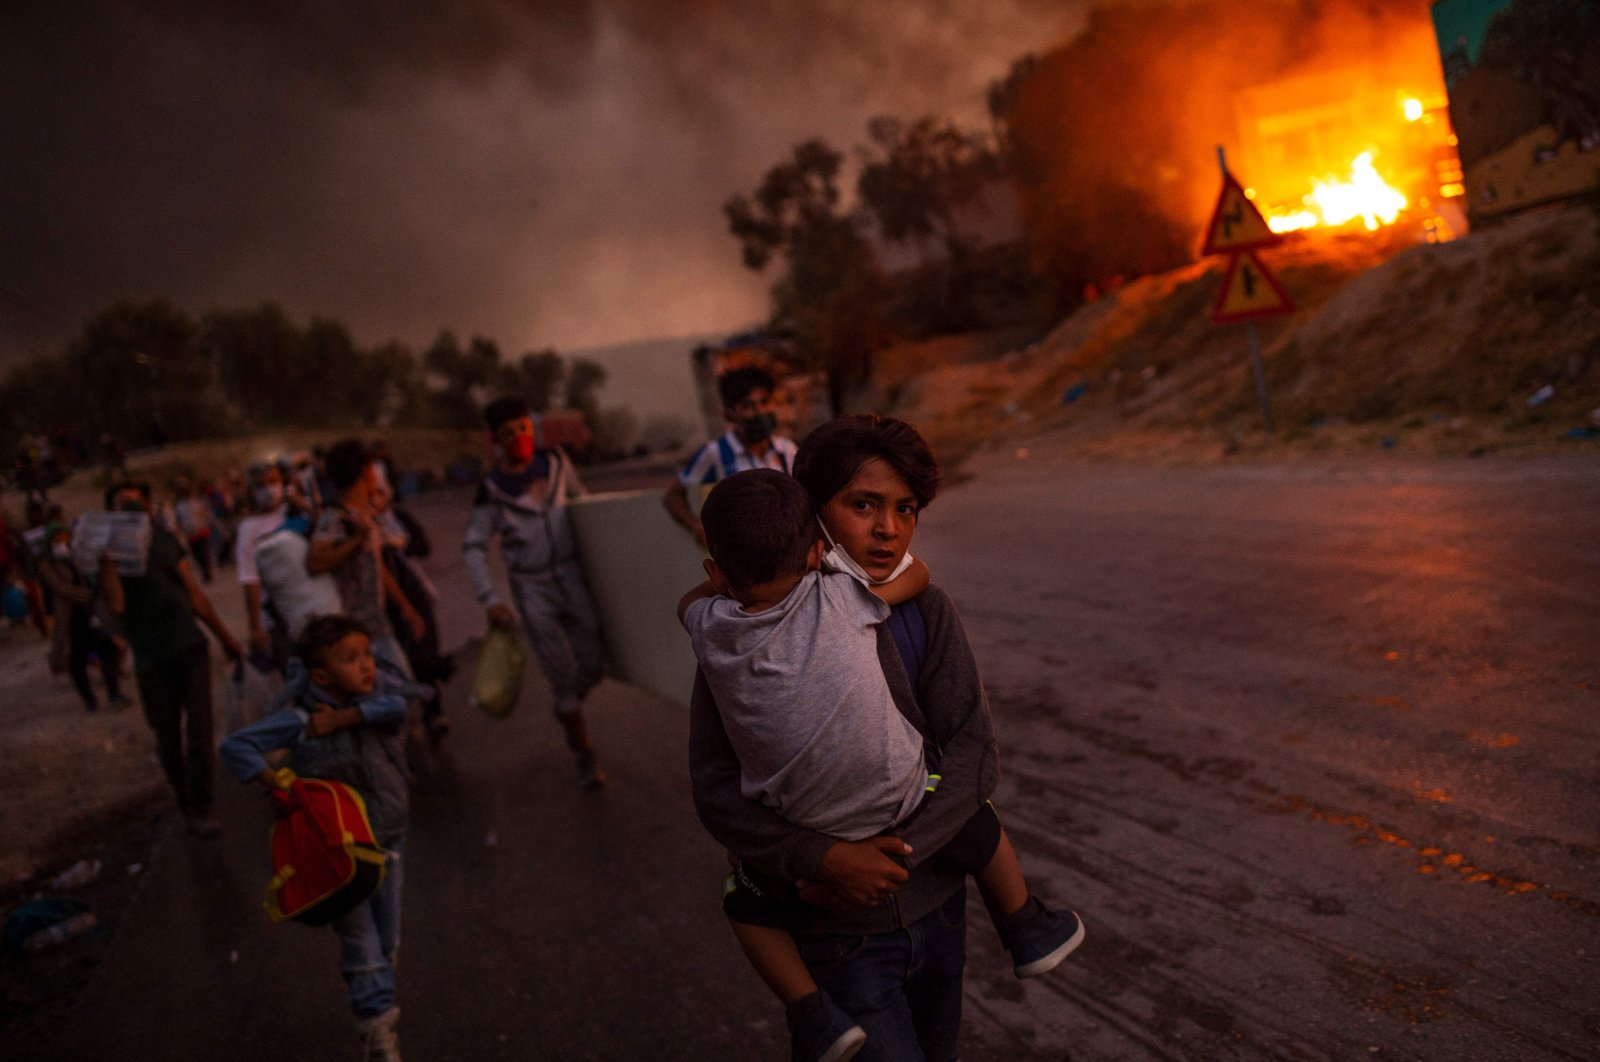 A boy carries a child in his arms as migrants flee the Moria camp after a fire broke out, on the island of Lesbos, Sept. 9, 2020. (AFP Photo)